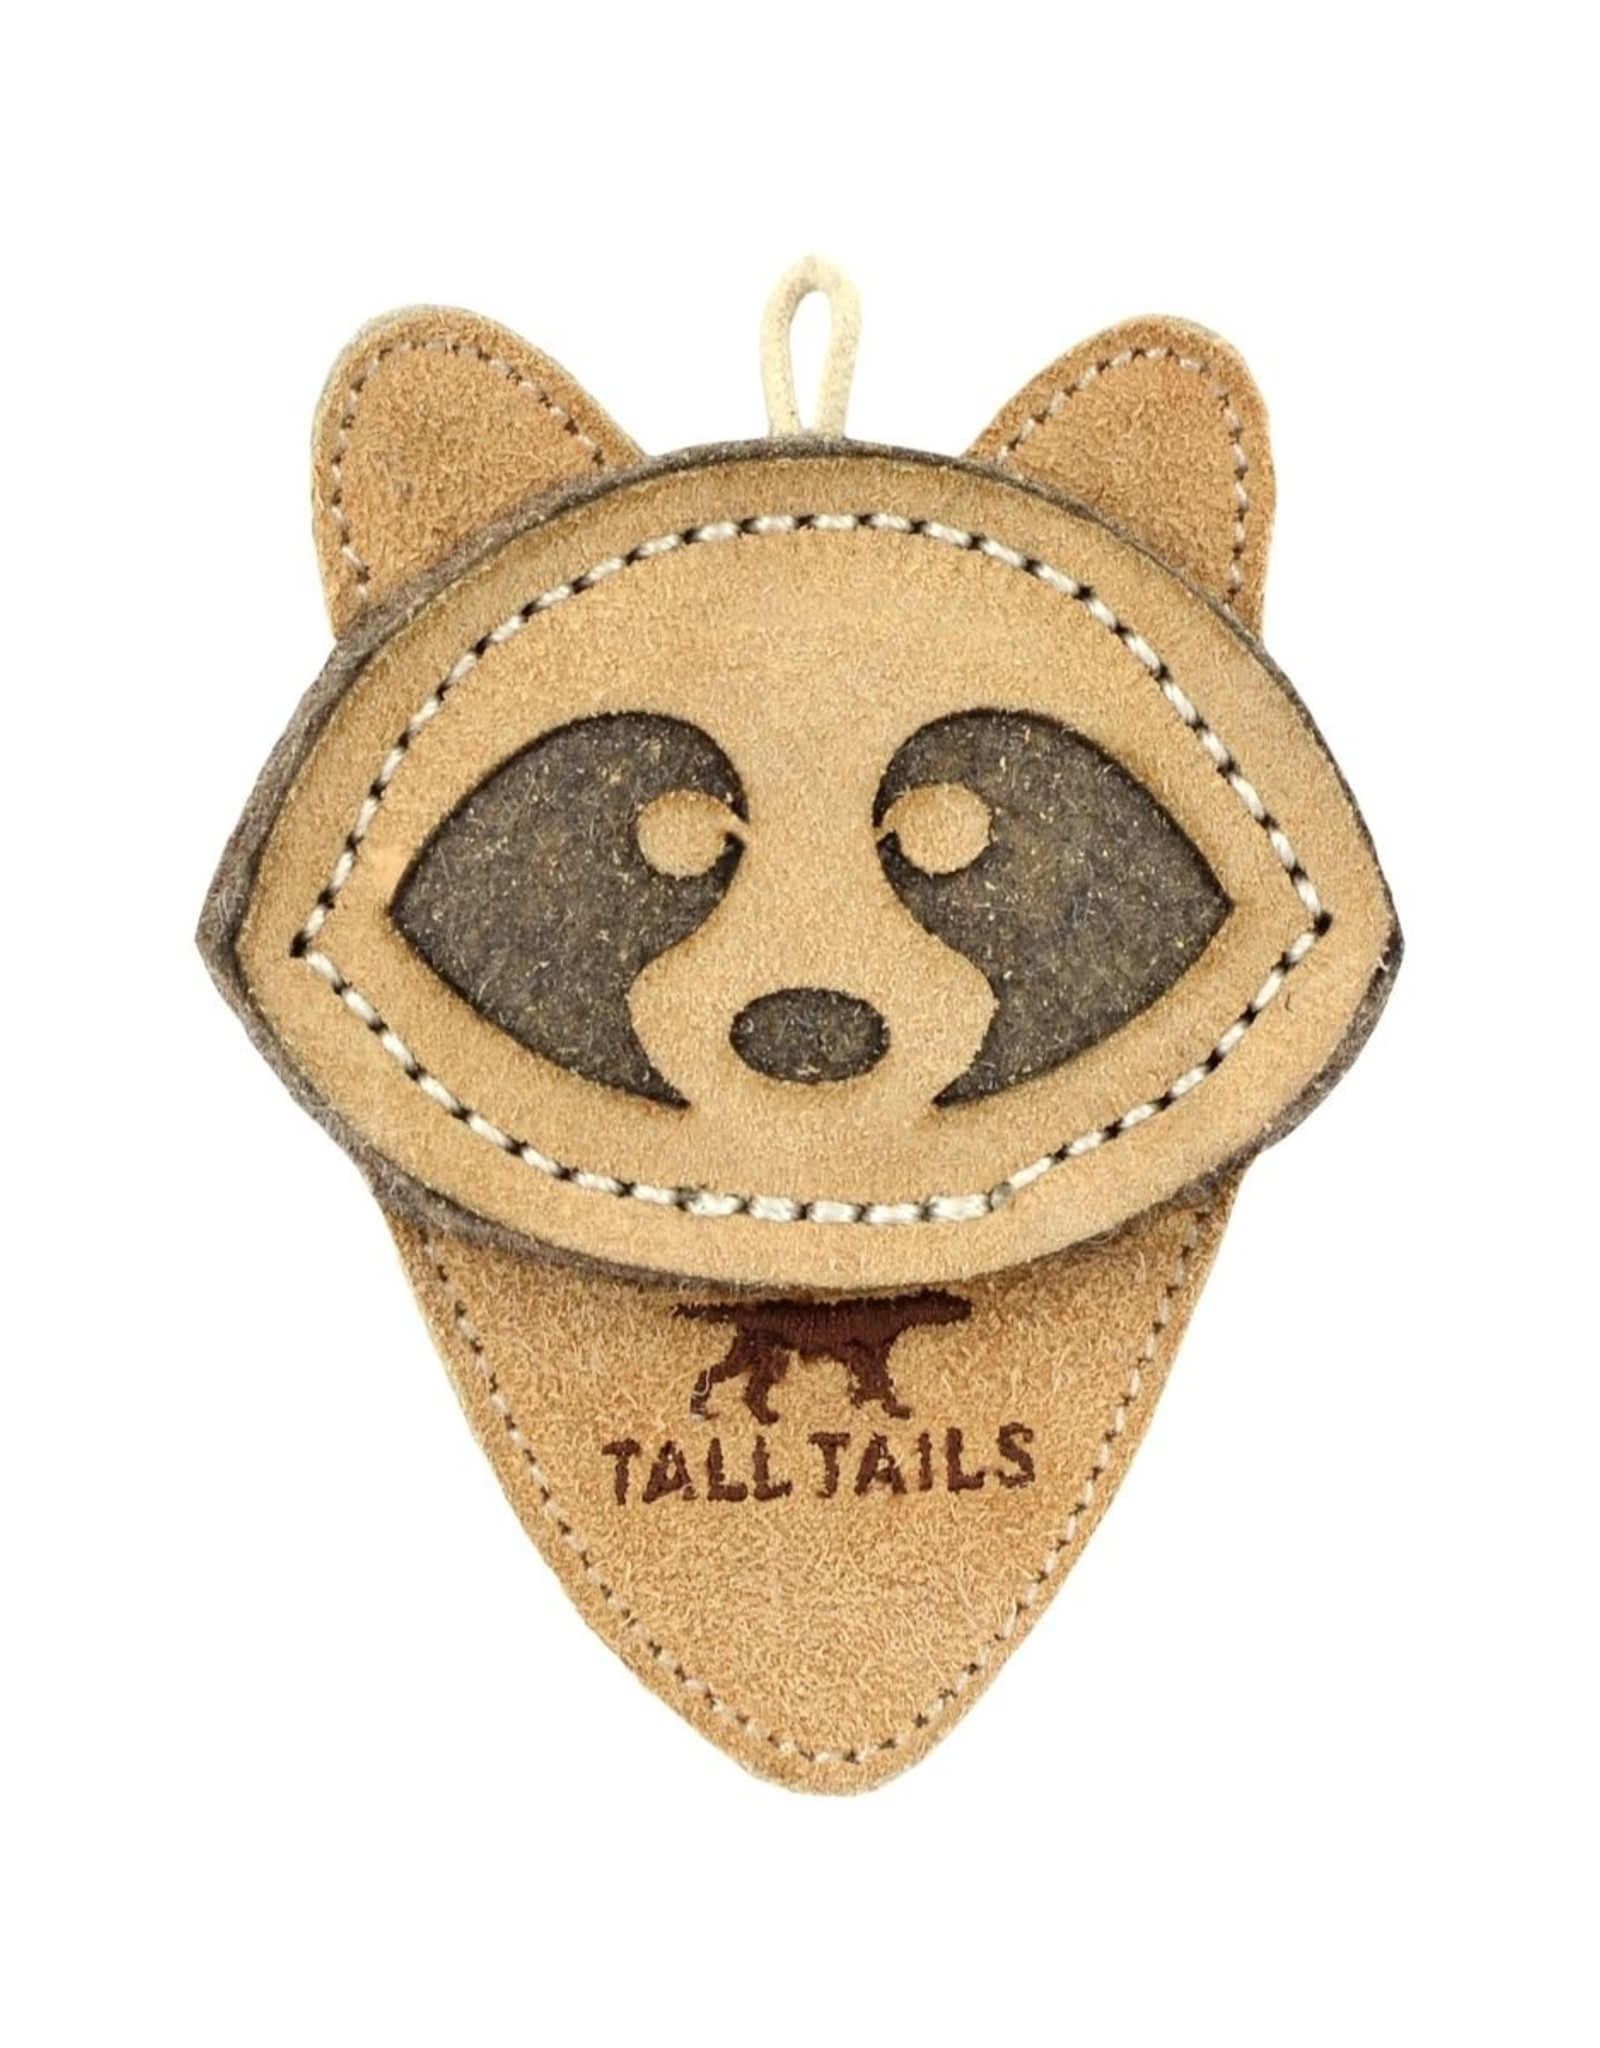 Tall Tails Tall Tails Leather Srappy Raccoon